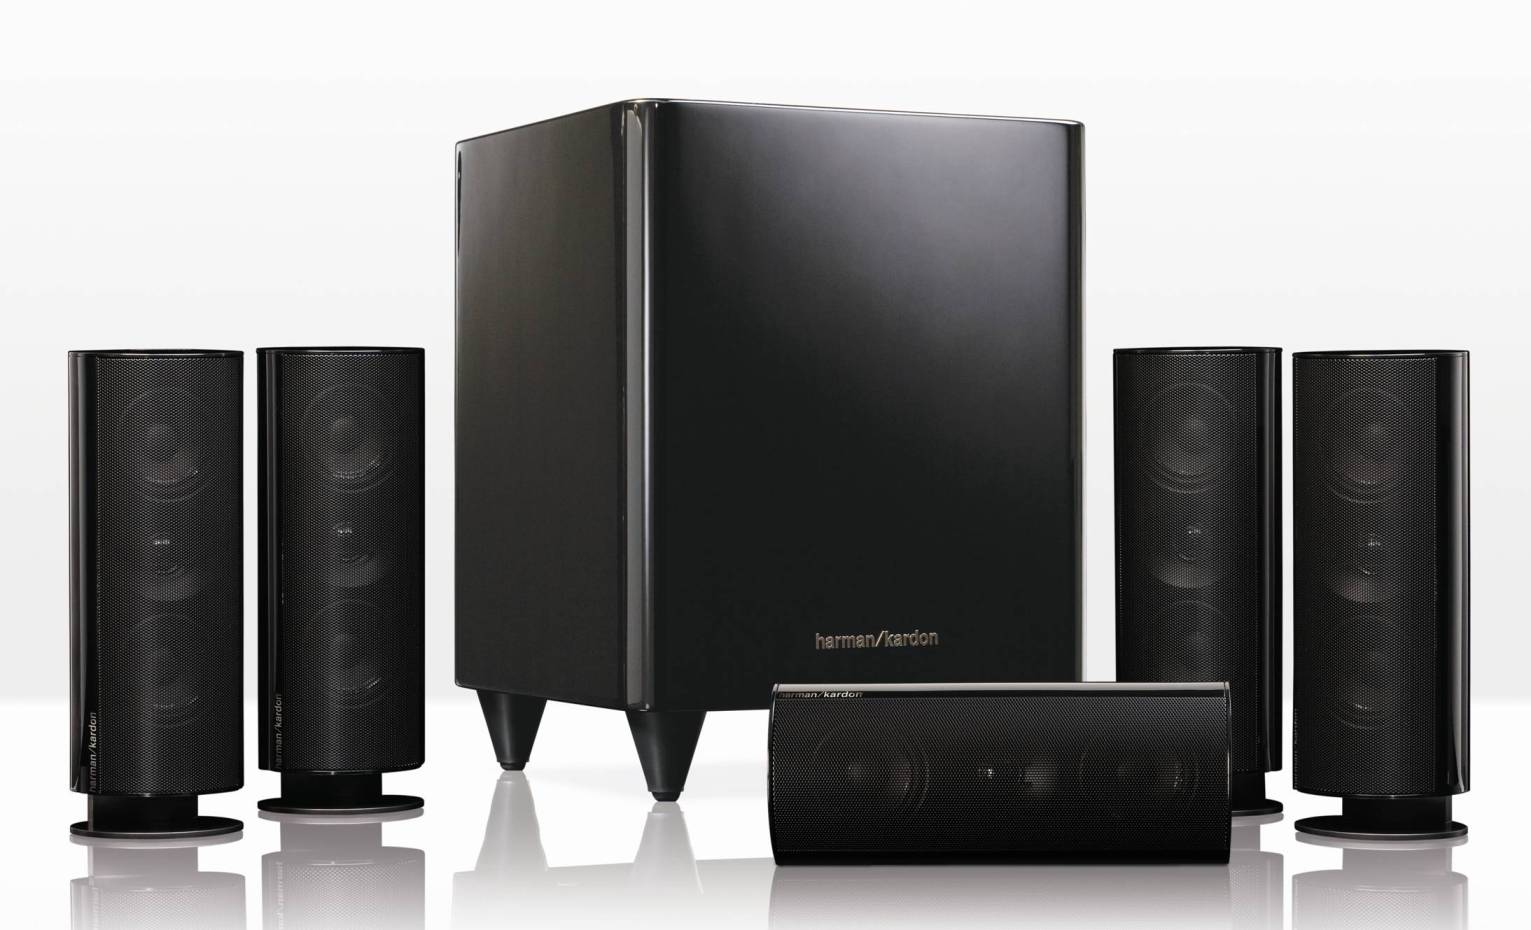 harman kardon hkts 30bq 5 1 home theater. Black Bedroom Furniture Sets. Home Design Ideas